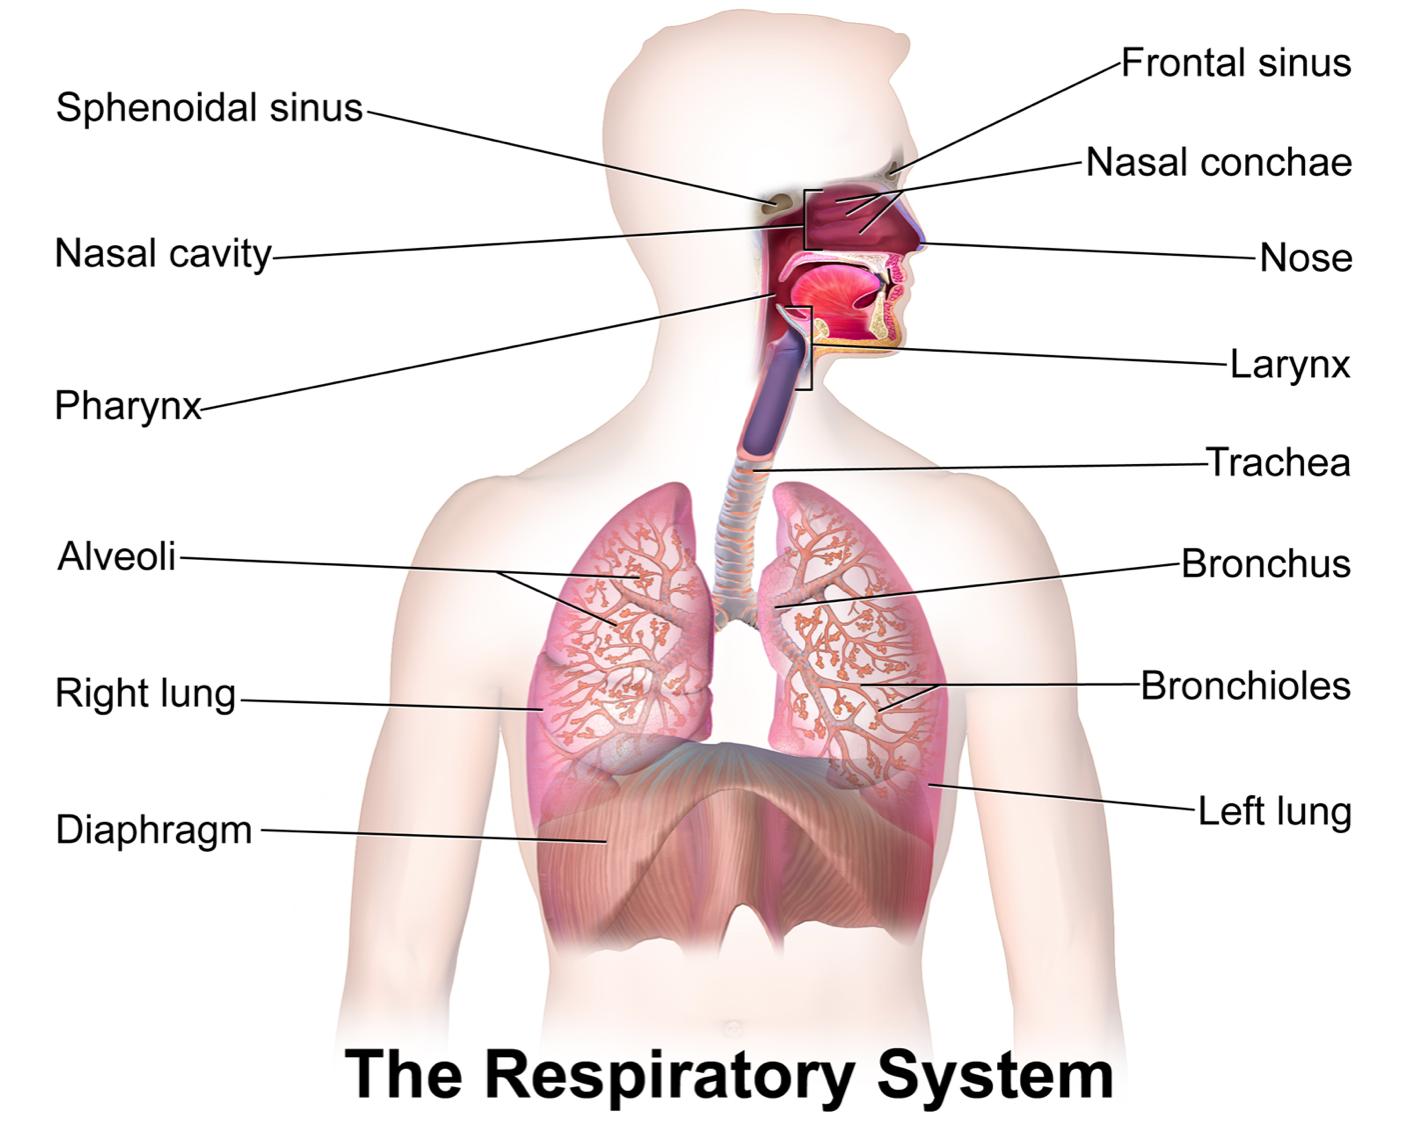 labeled diagram of the lungs/respiratory system., Skeleton